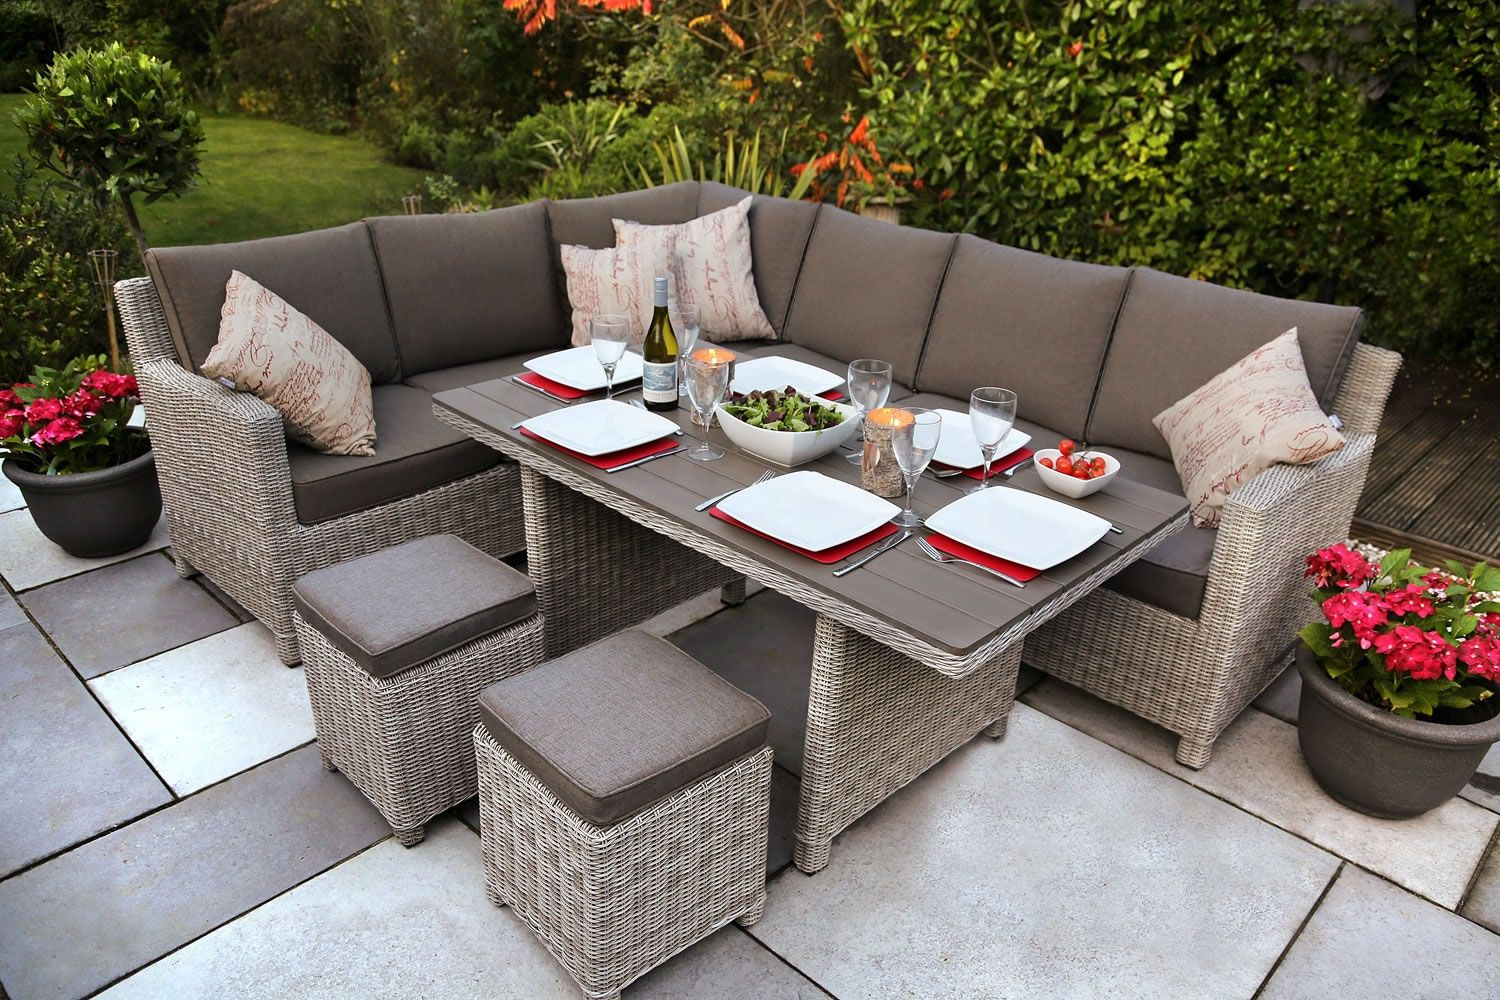 does both jobsdining relaxing kettler palma corner set white wash garden furniture world - Garden Furniture Kettler